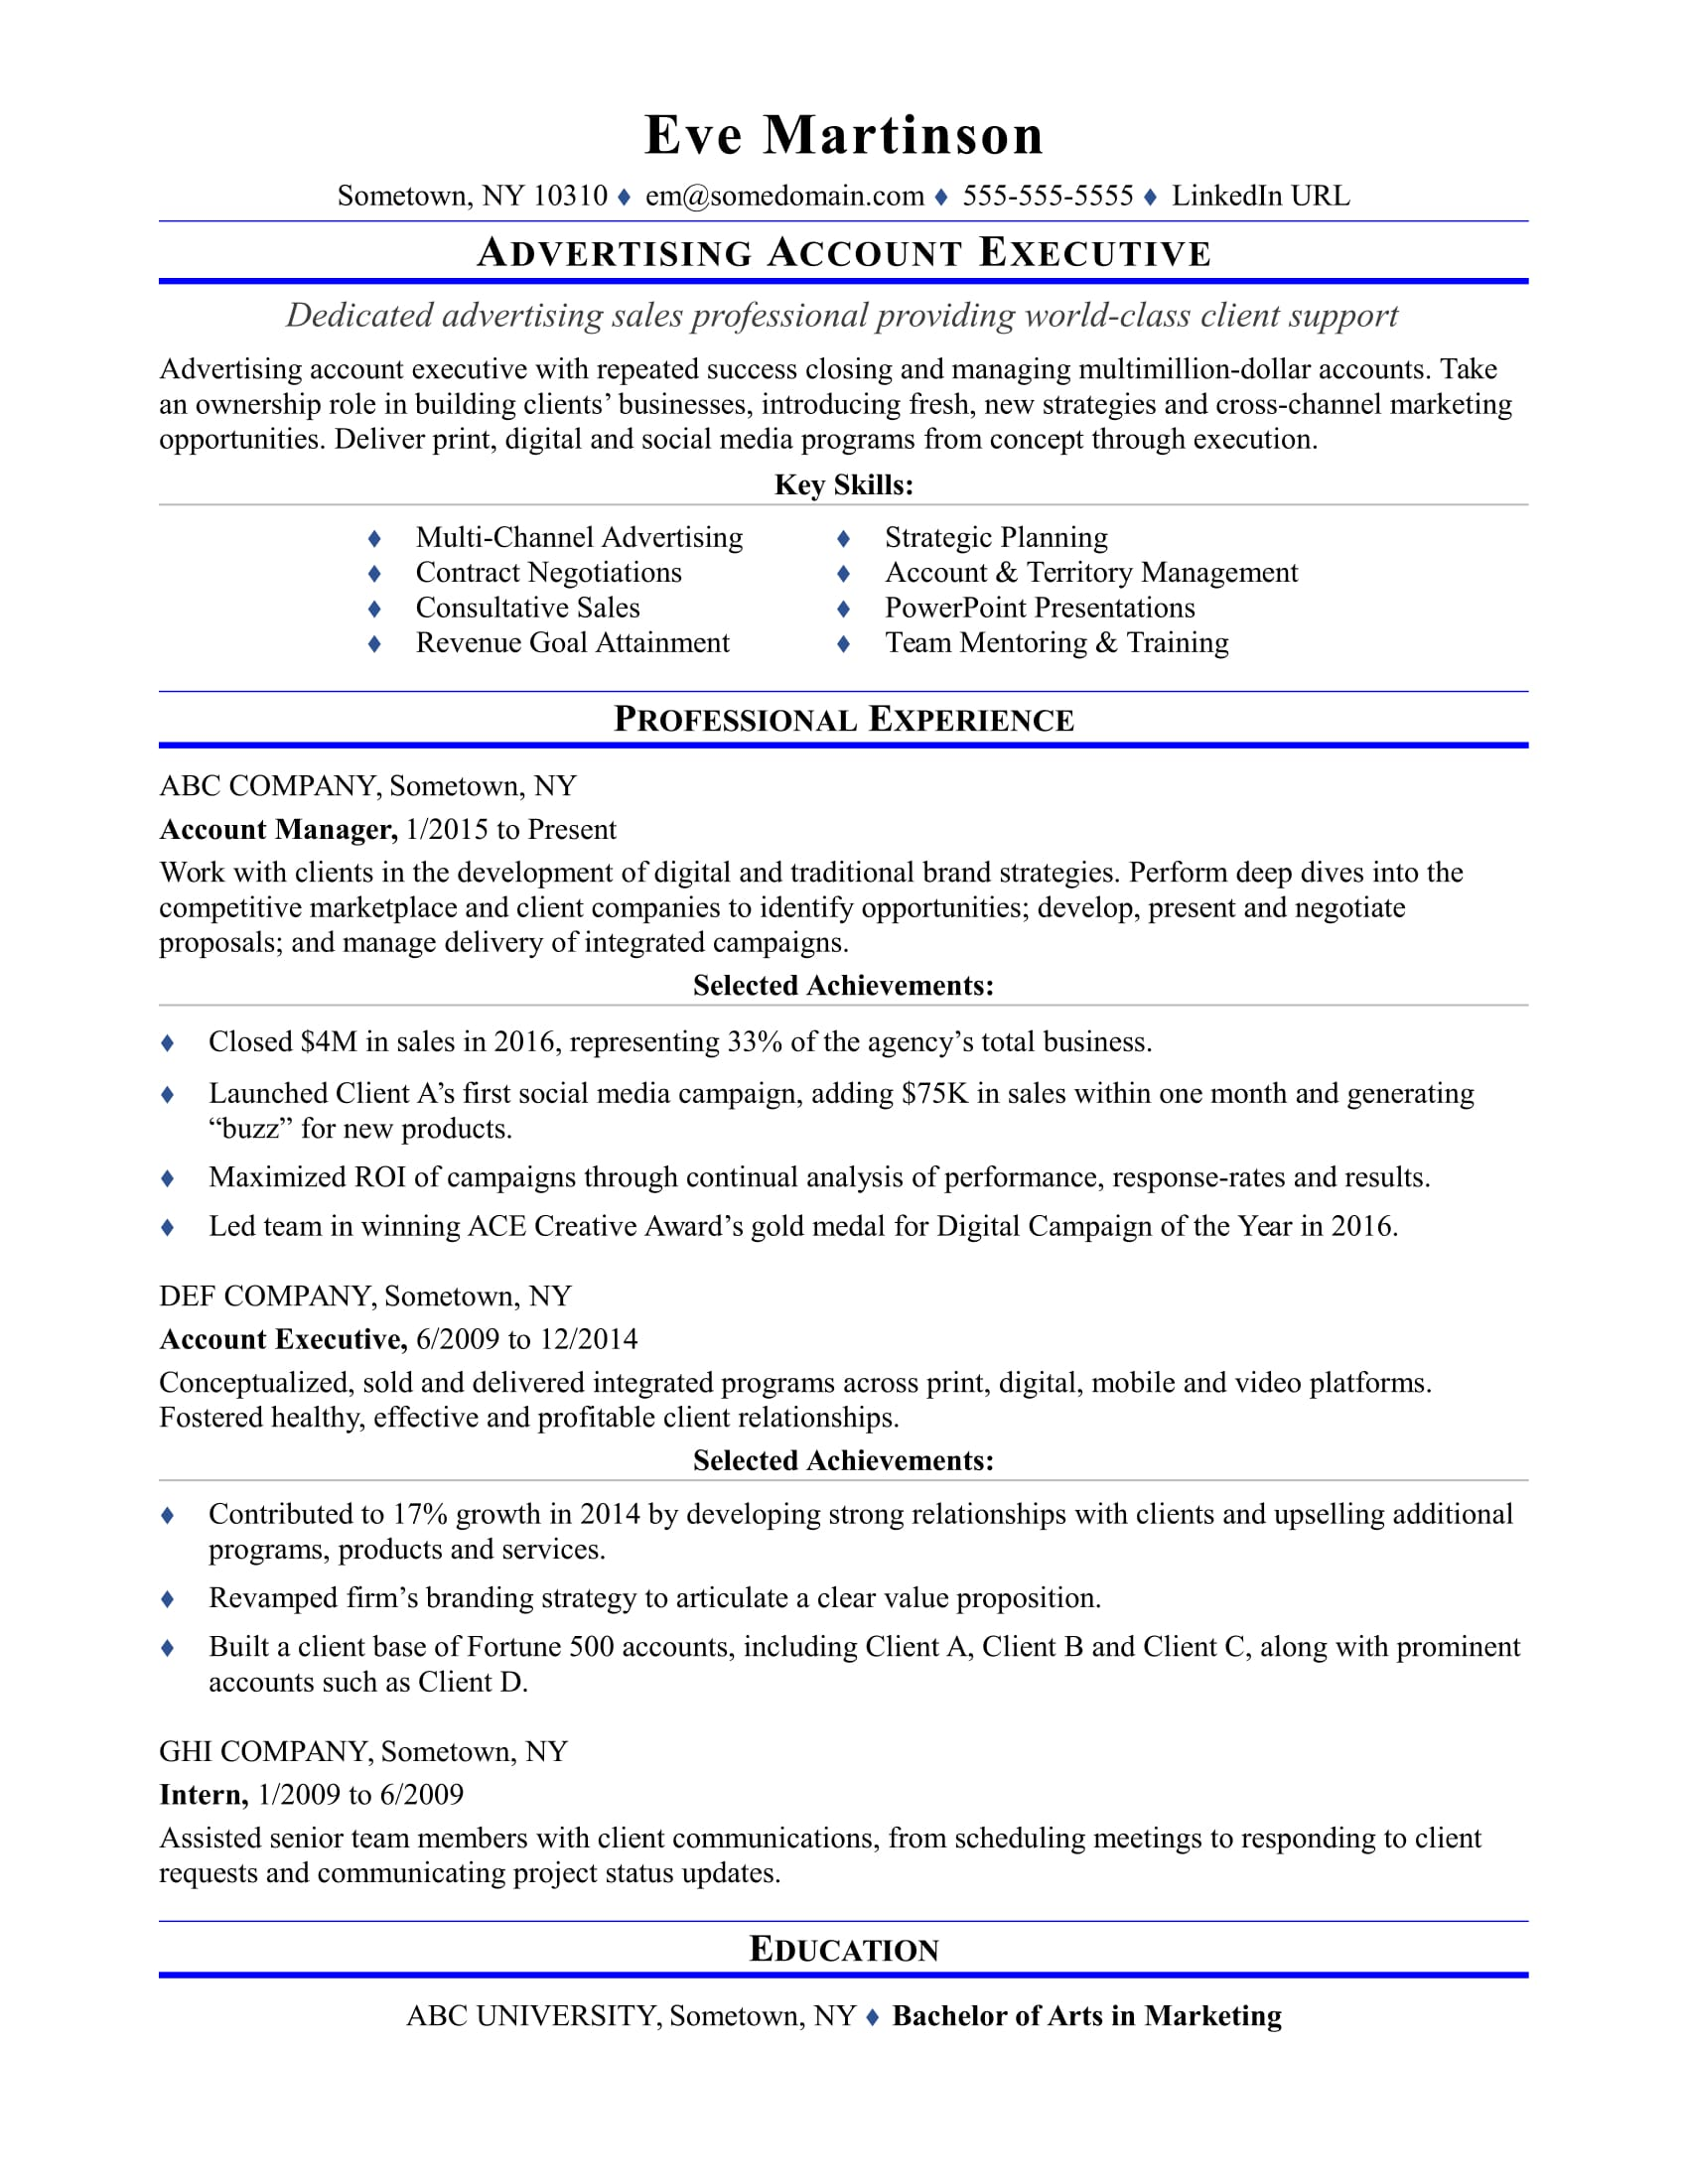 Sales And Marketing Executive Cover Letter Sample Resume For An Advertising Account Executive Monster